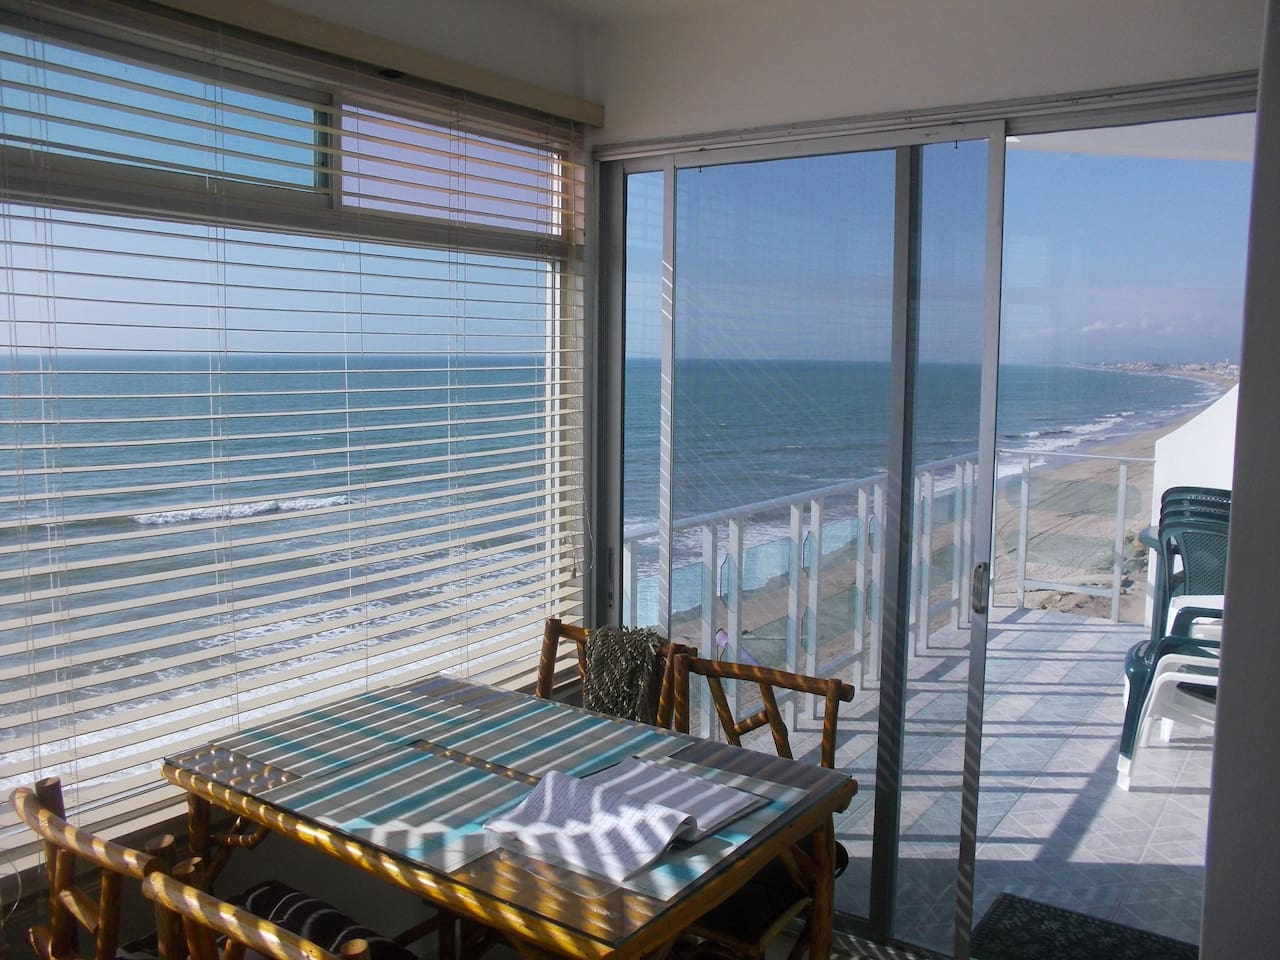 View from Kitchen Dining Nook to Balcony and the Pacific Ocean, North to Crucita Centro